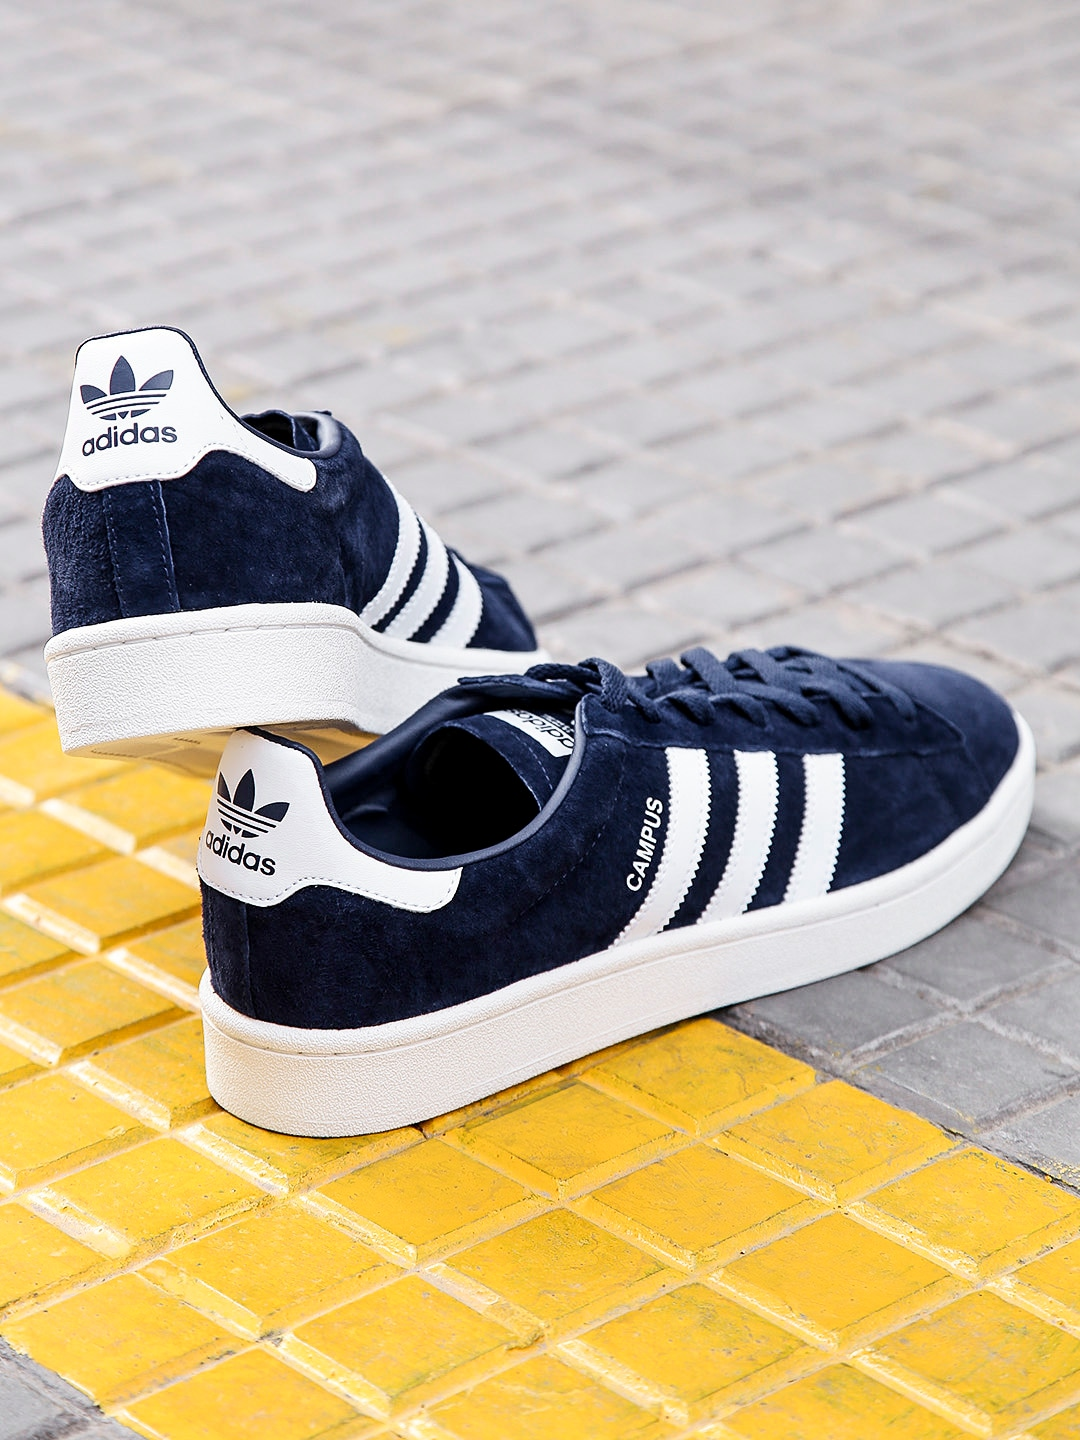 low priced c3ed8 24655 Adidas Originals men campus leather sneakers08 January 2019 BuyBesto.com